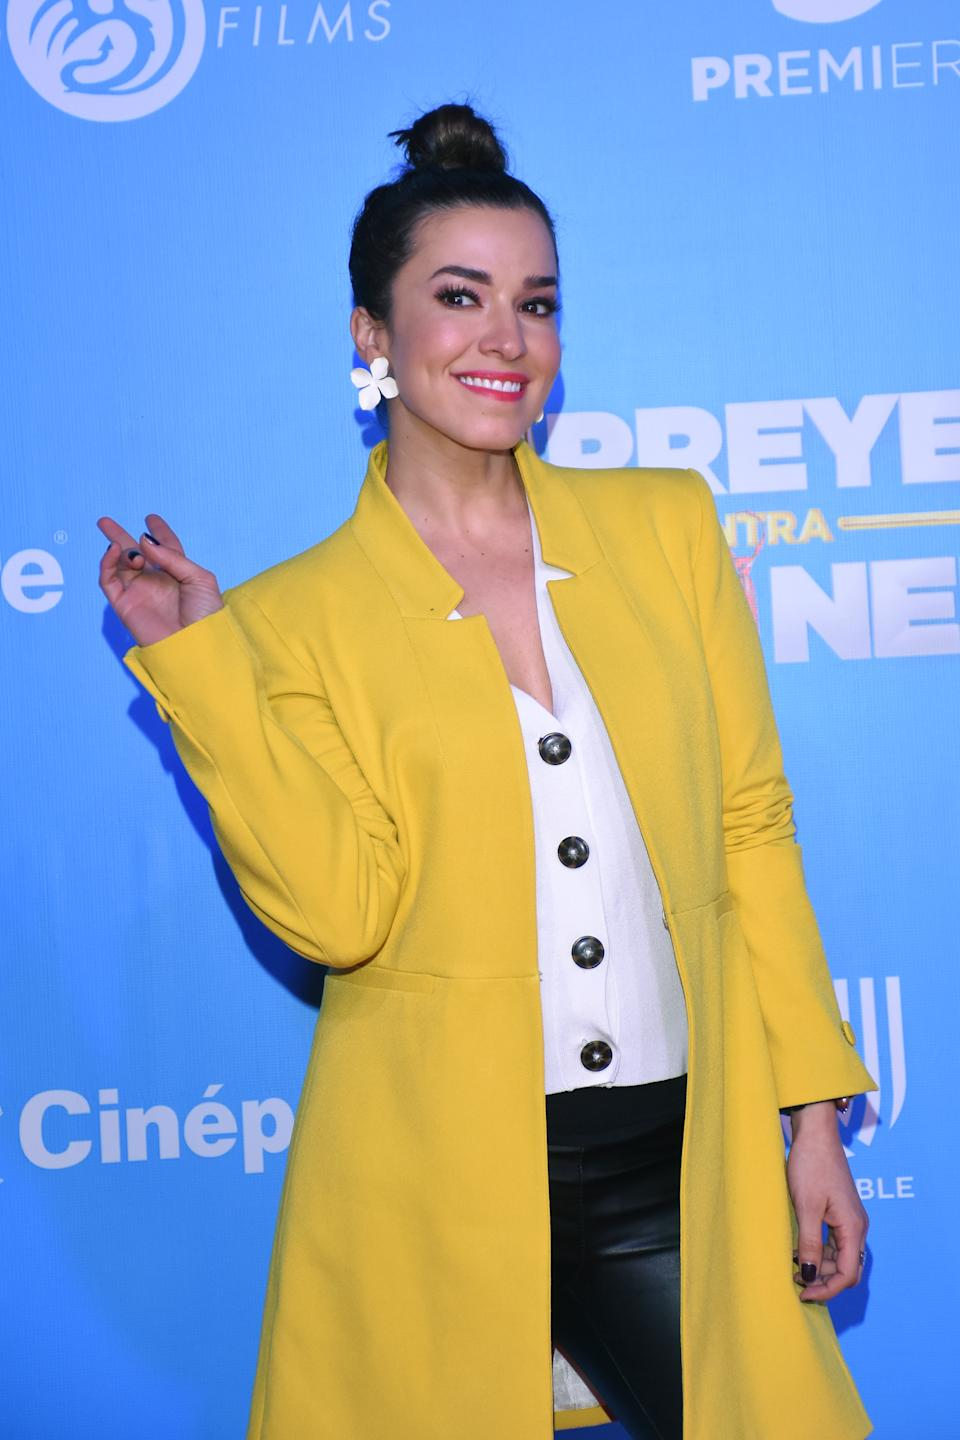 MEXICO CITY, MEXICO - JANUARY 22: Laura G  poses for photos during a red carpet as part of the film 'Mirreyes vs GodÌnez' on January 22, 2019 in Mexico City, Mexico.  (Photo by Carlos Tischler/Getty Images)